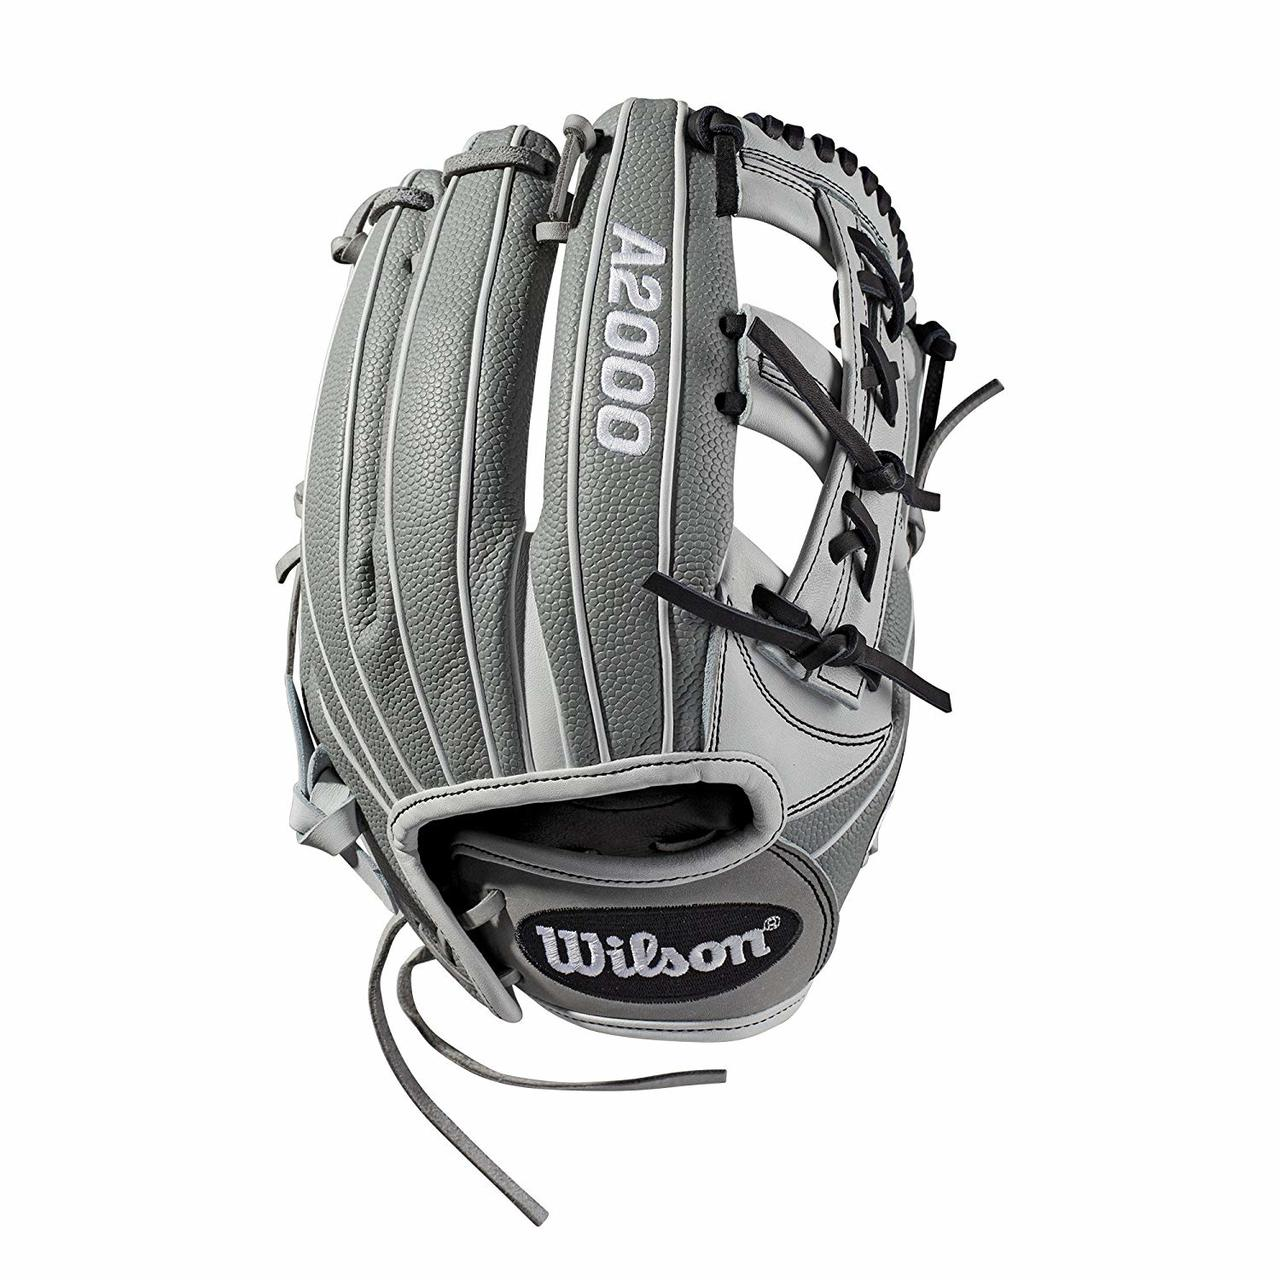 wilson-a2000-fastptich-softball-glove-11-75-cross-web-right-hand-throw WTA20RF19FP75SS-RightHandThrow  887768702113 nfield model; single post 3x web; fast pitch-specific WTA20RF19FP75SS New Drawstring